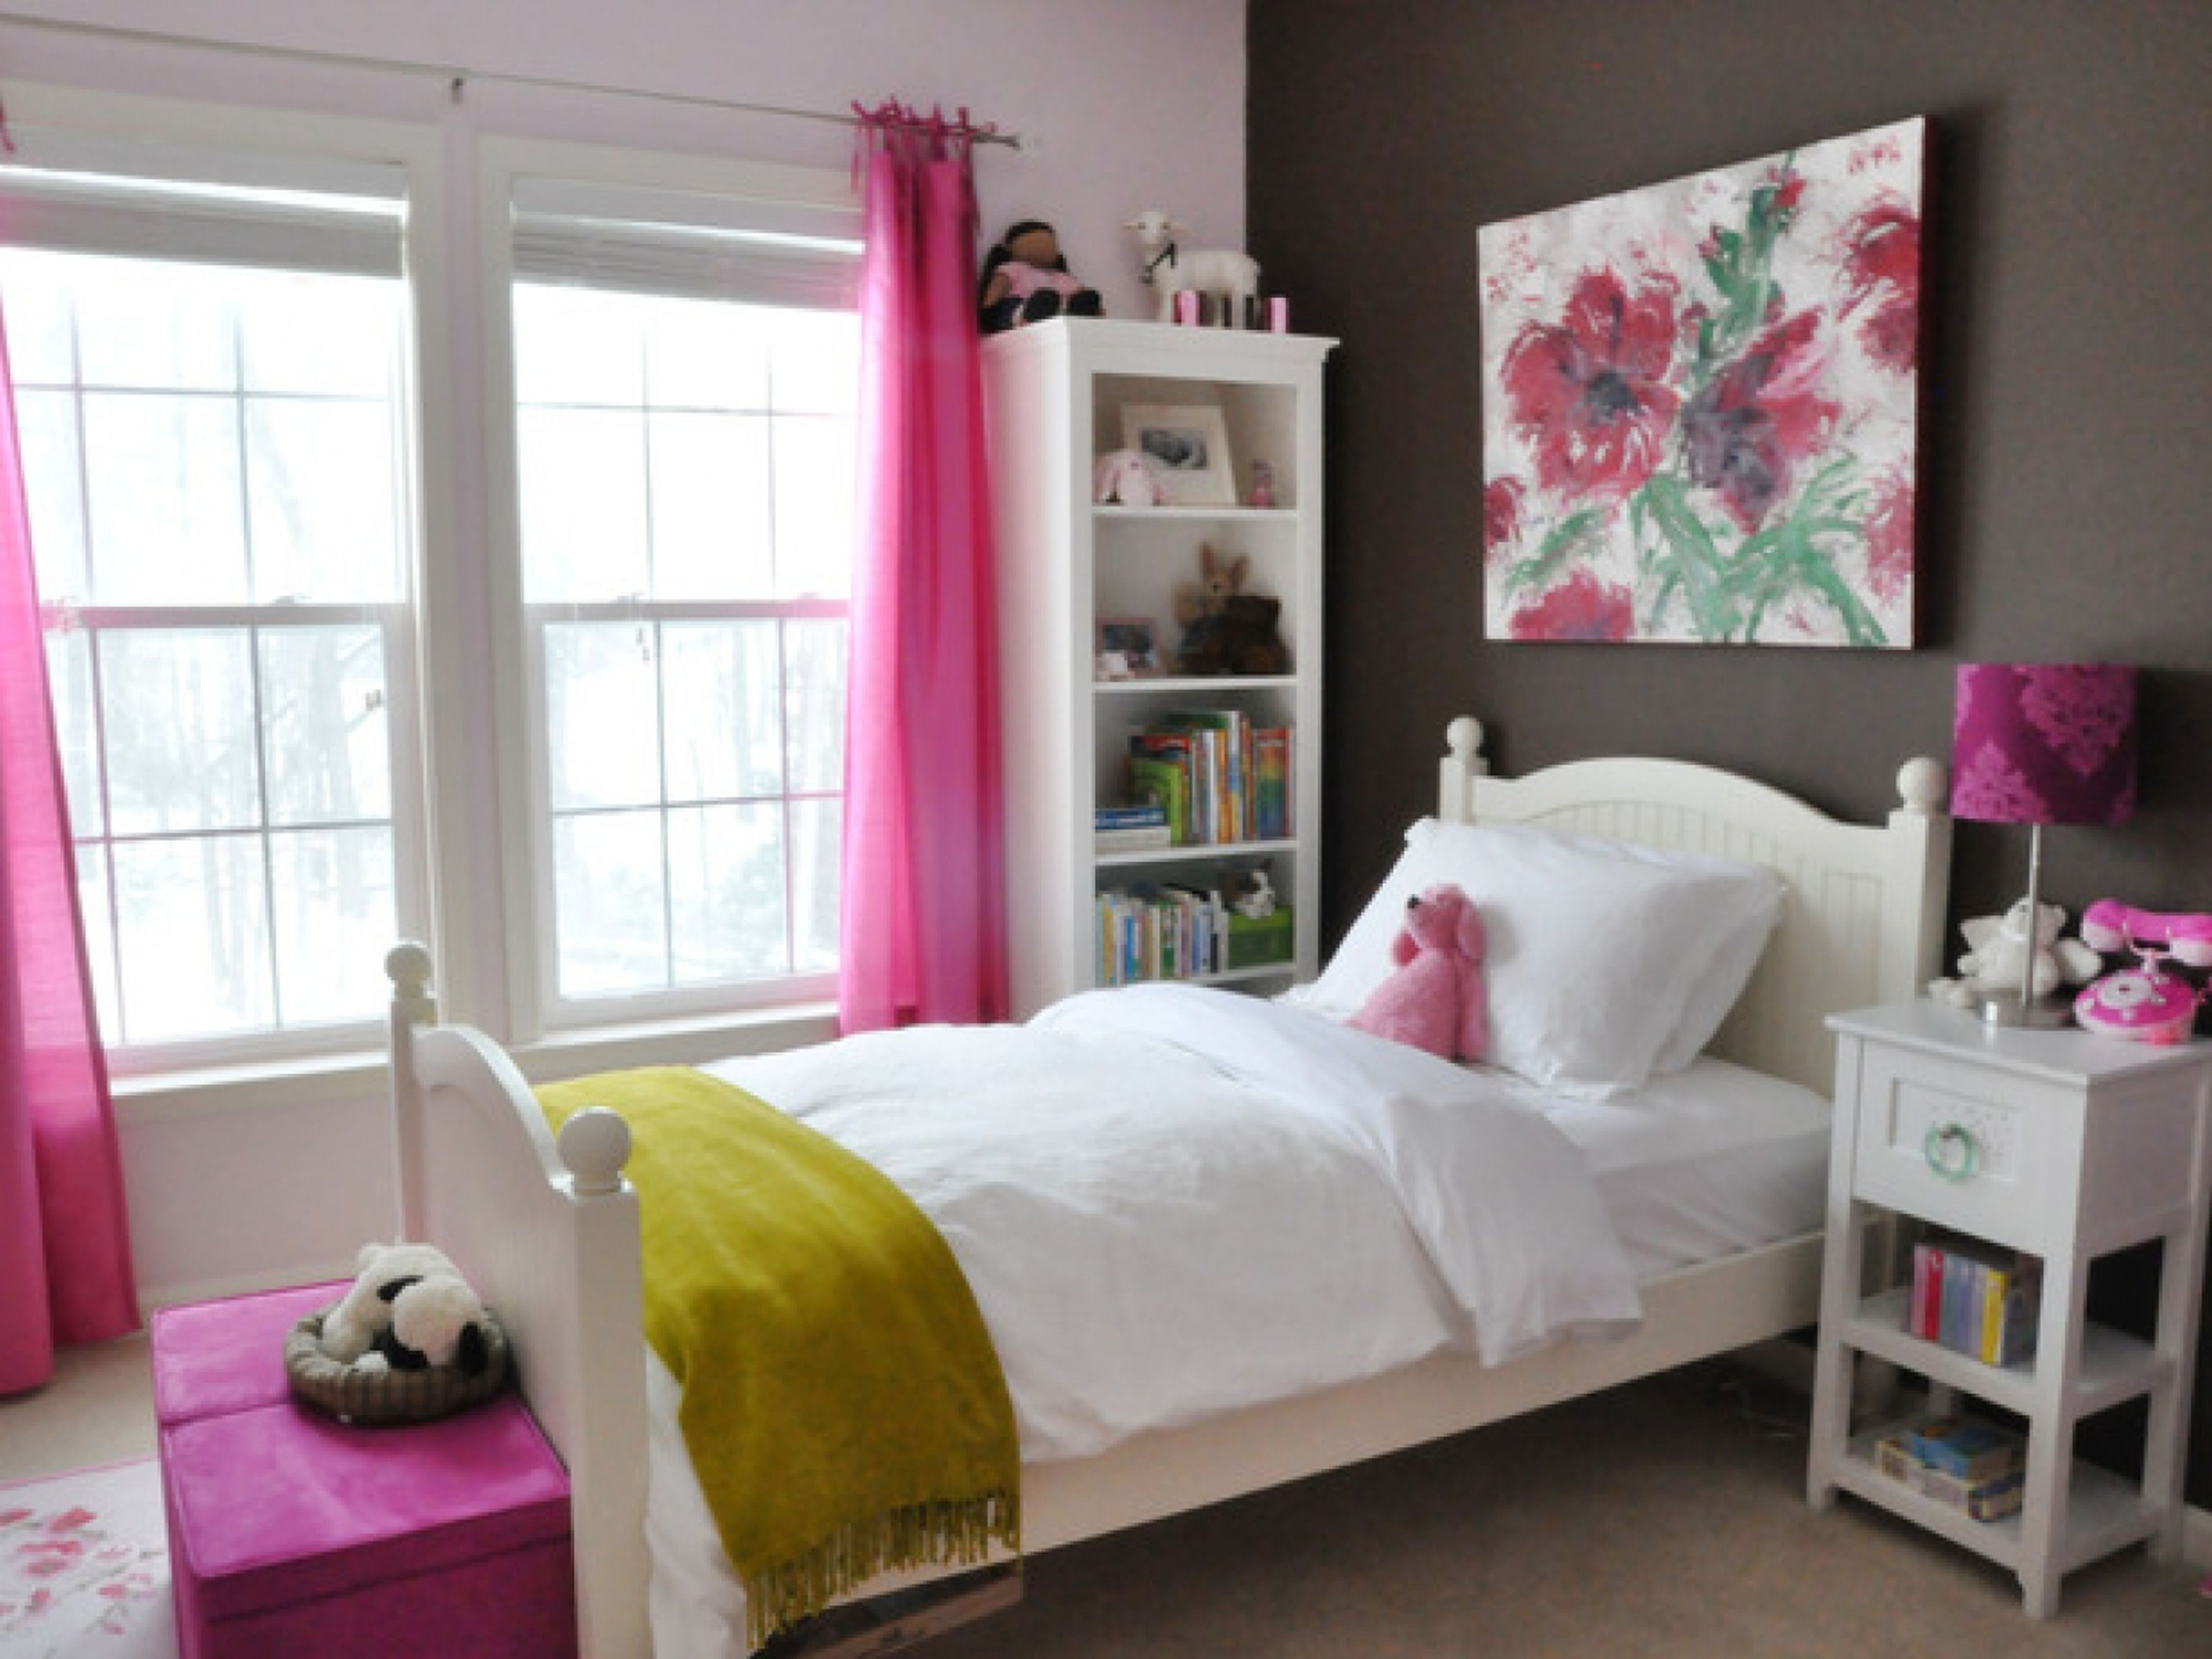 Graceful Tween Bedroom Using Pink Window Curtains and Benches Decor